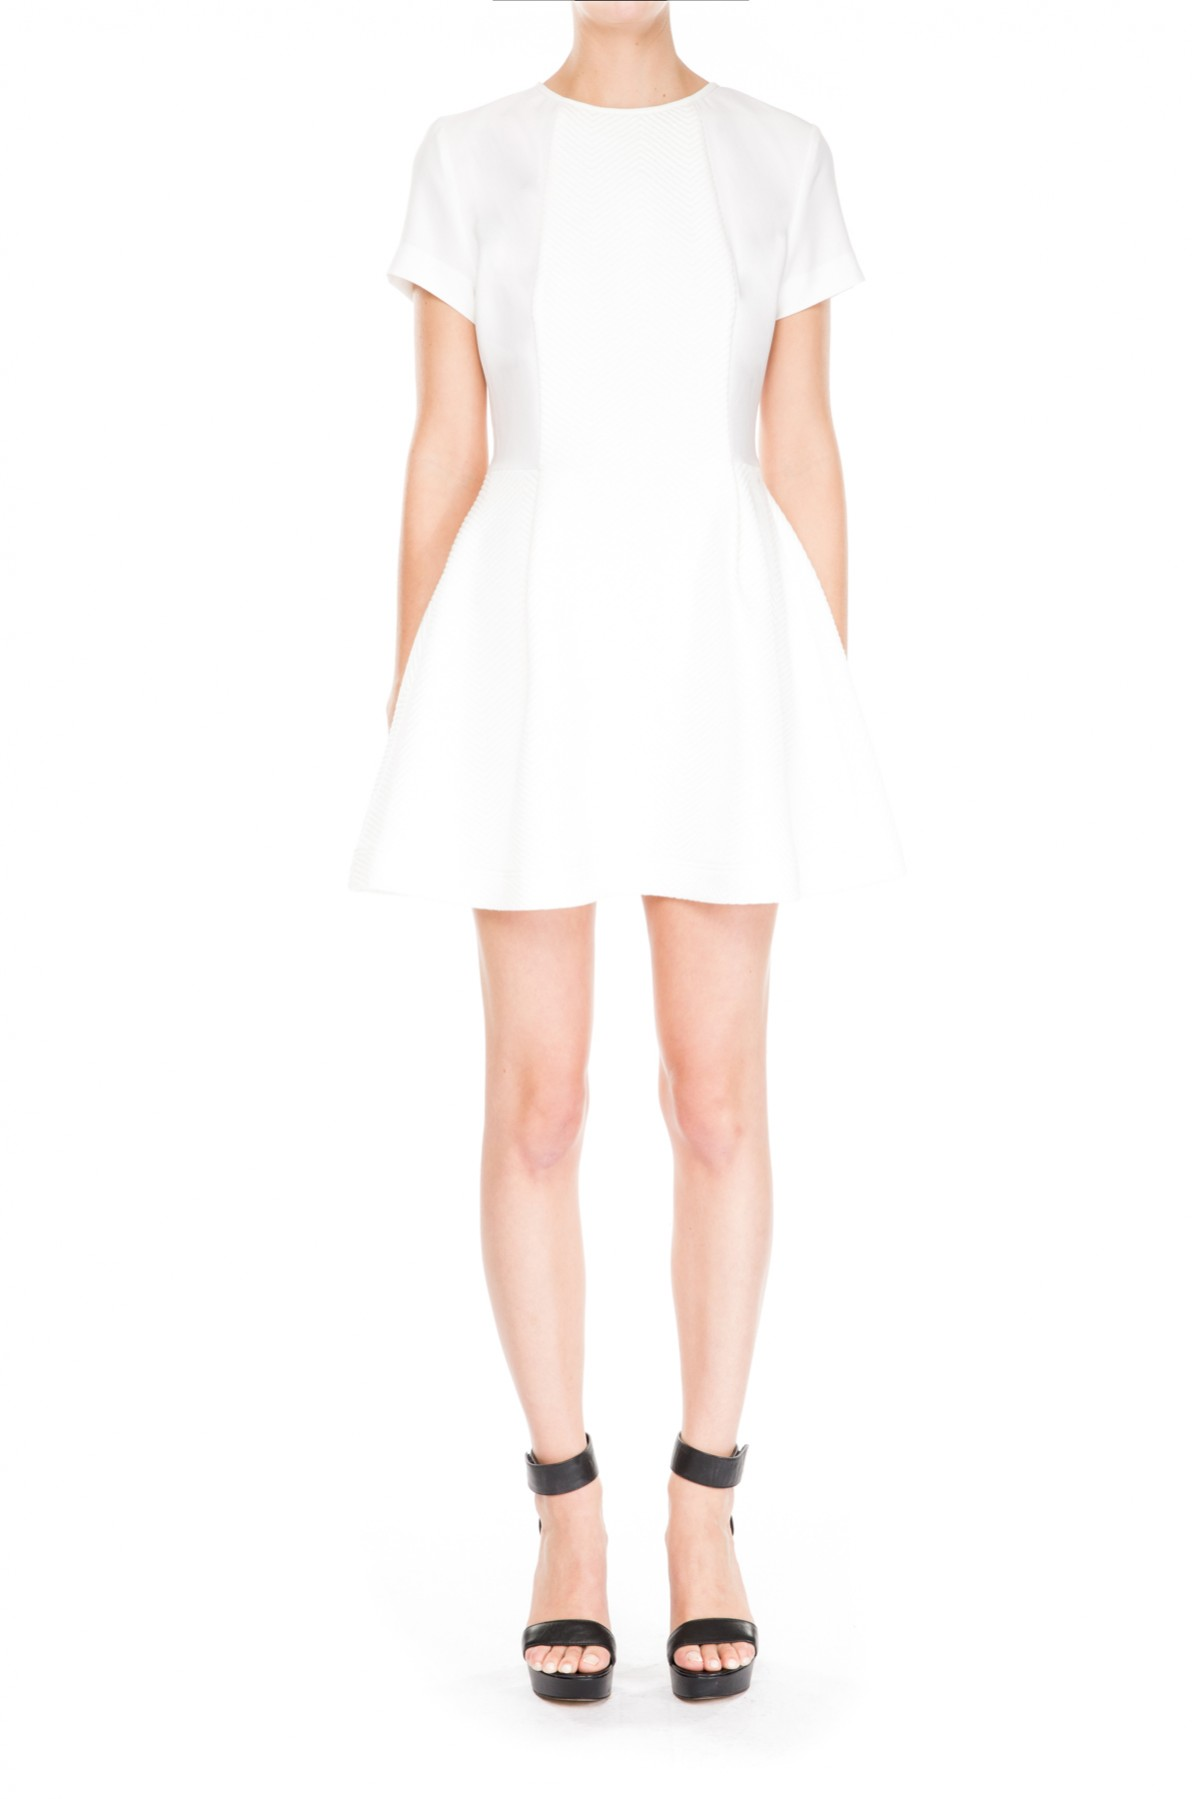 The Fifth HYPER PARADISE DRESS IVORY - BNKR